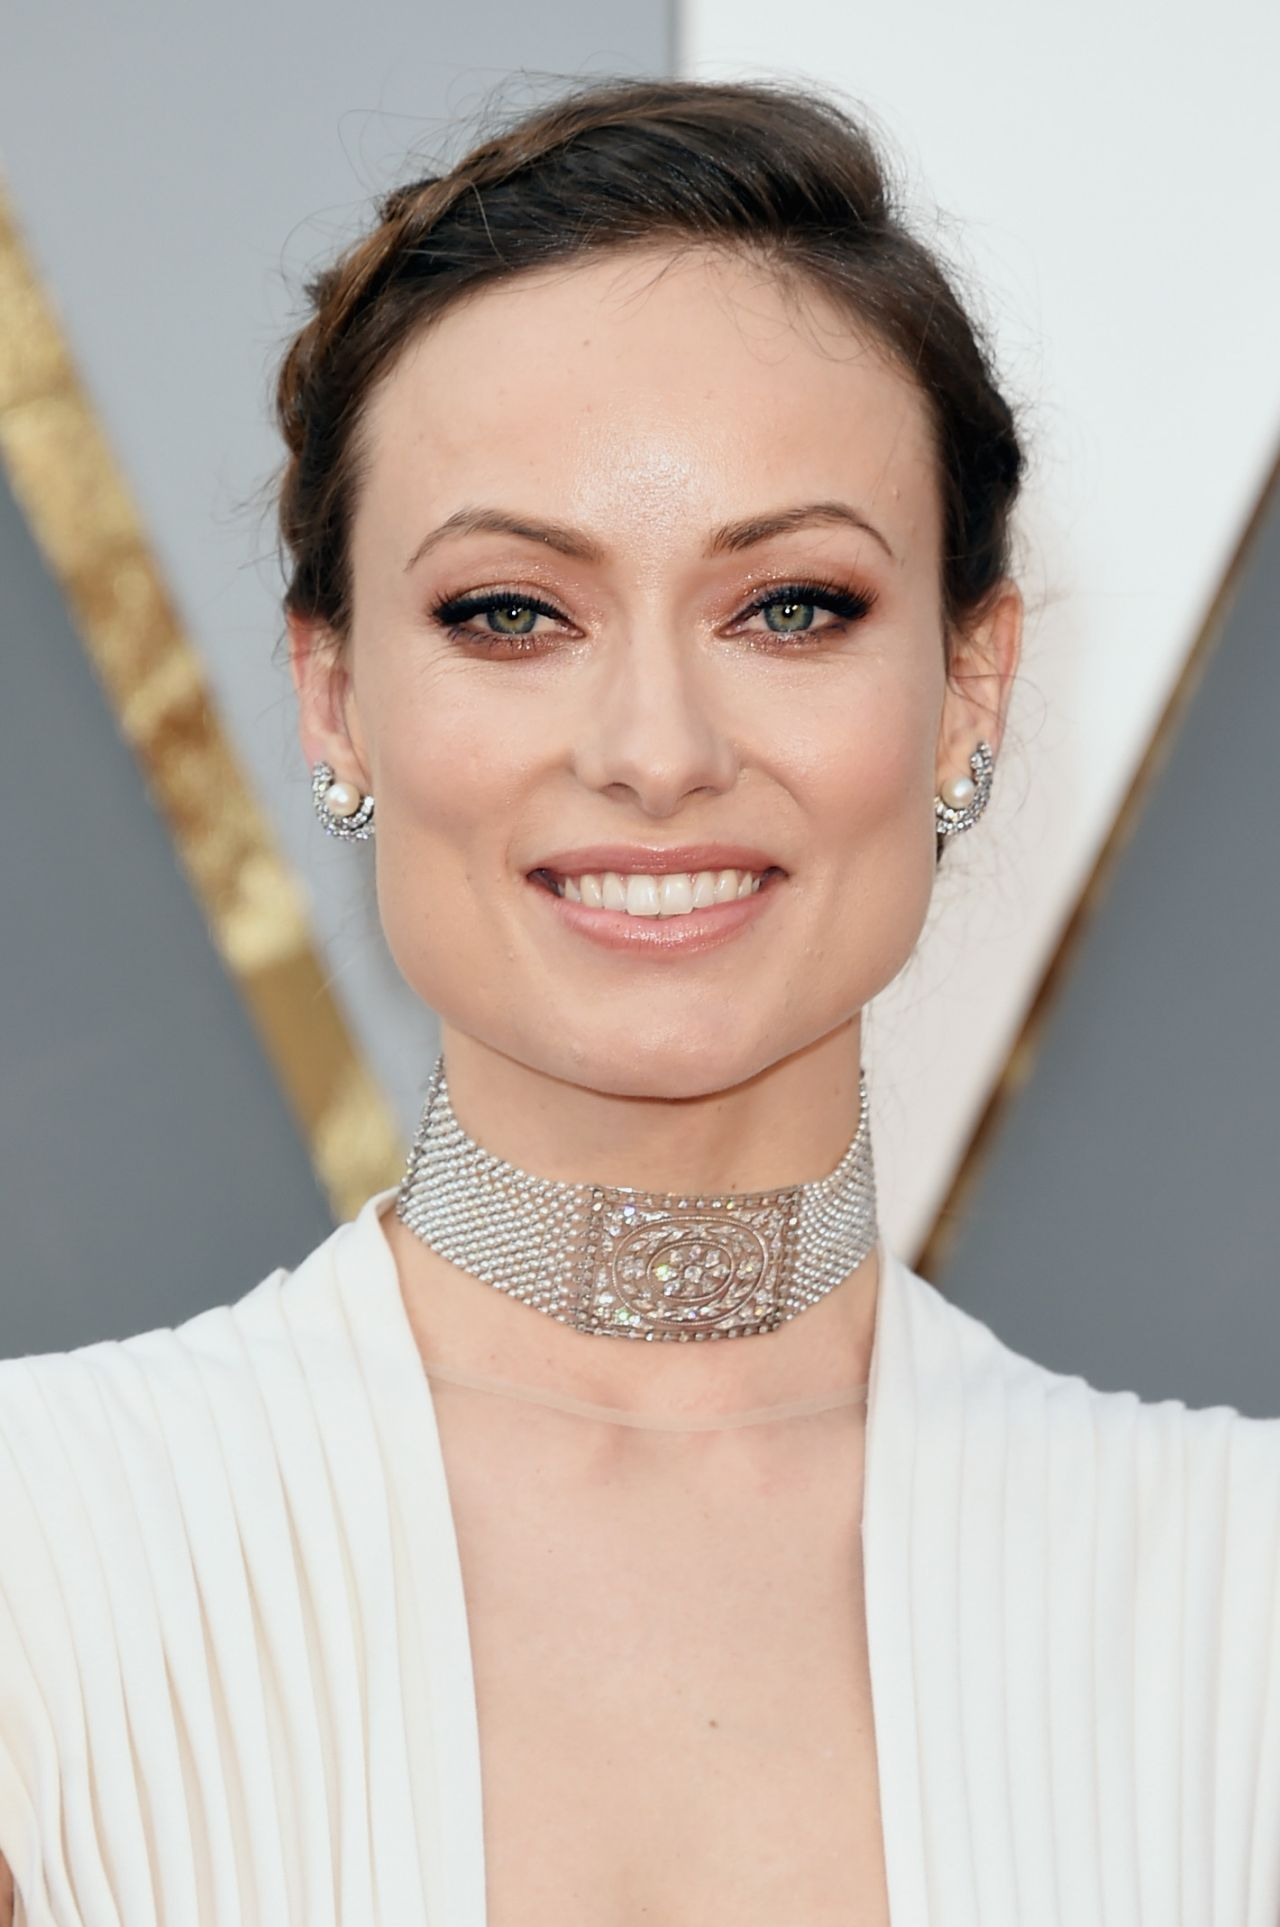 Olivia Wilde – Oscars 2016 in Hollywood, CA 2/28/2016 Olivia Wilde